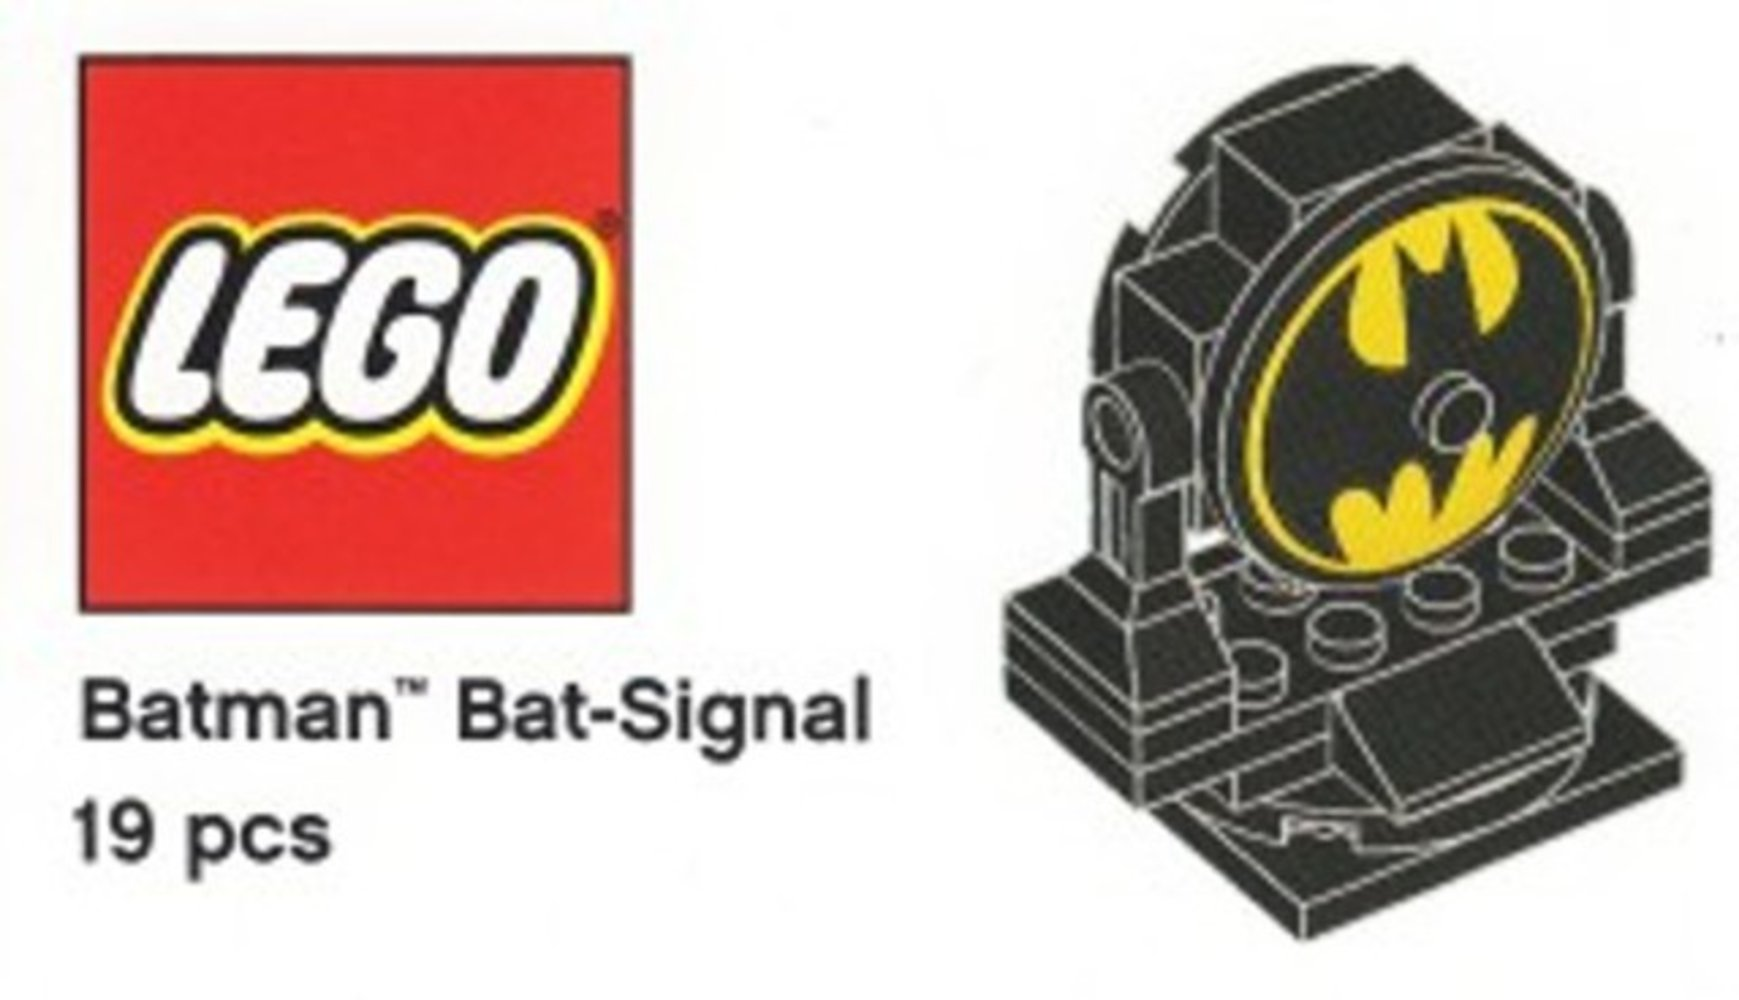 Batman Bat-Signal